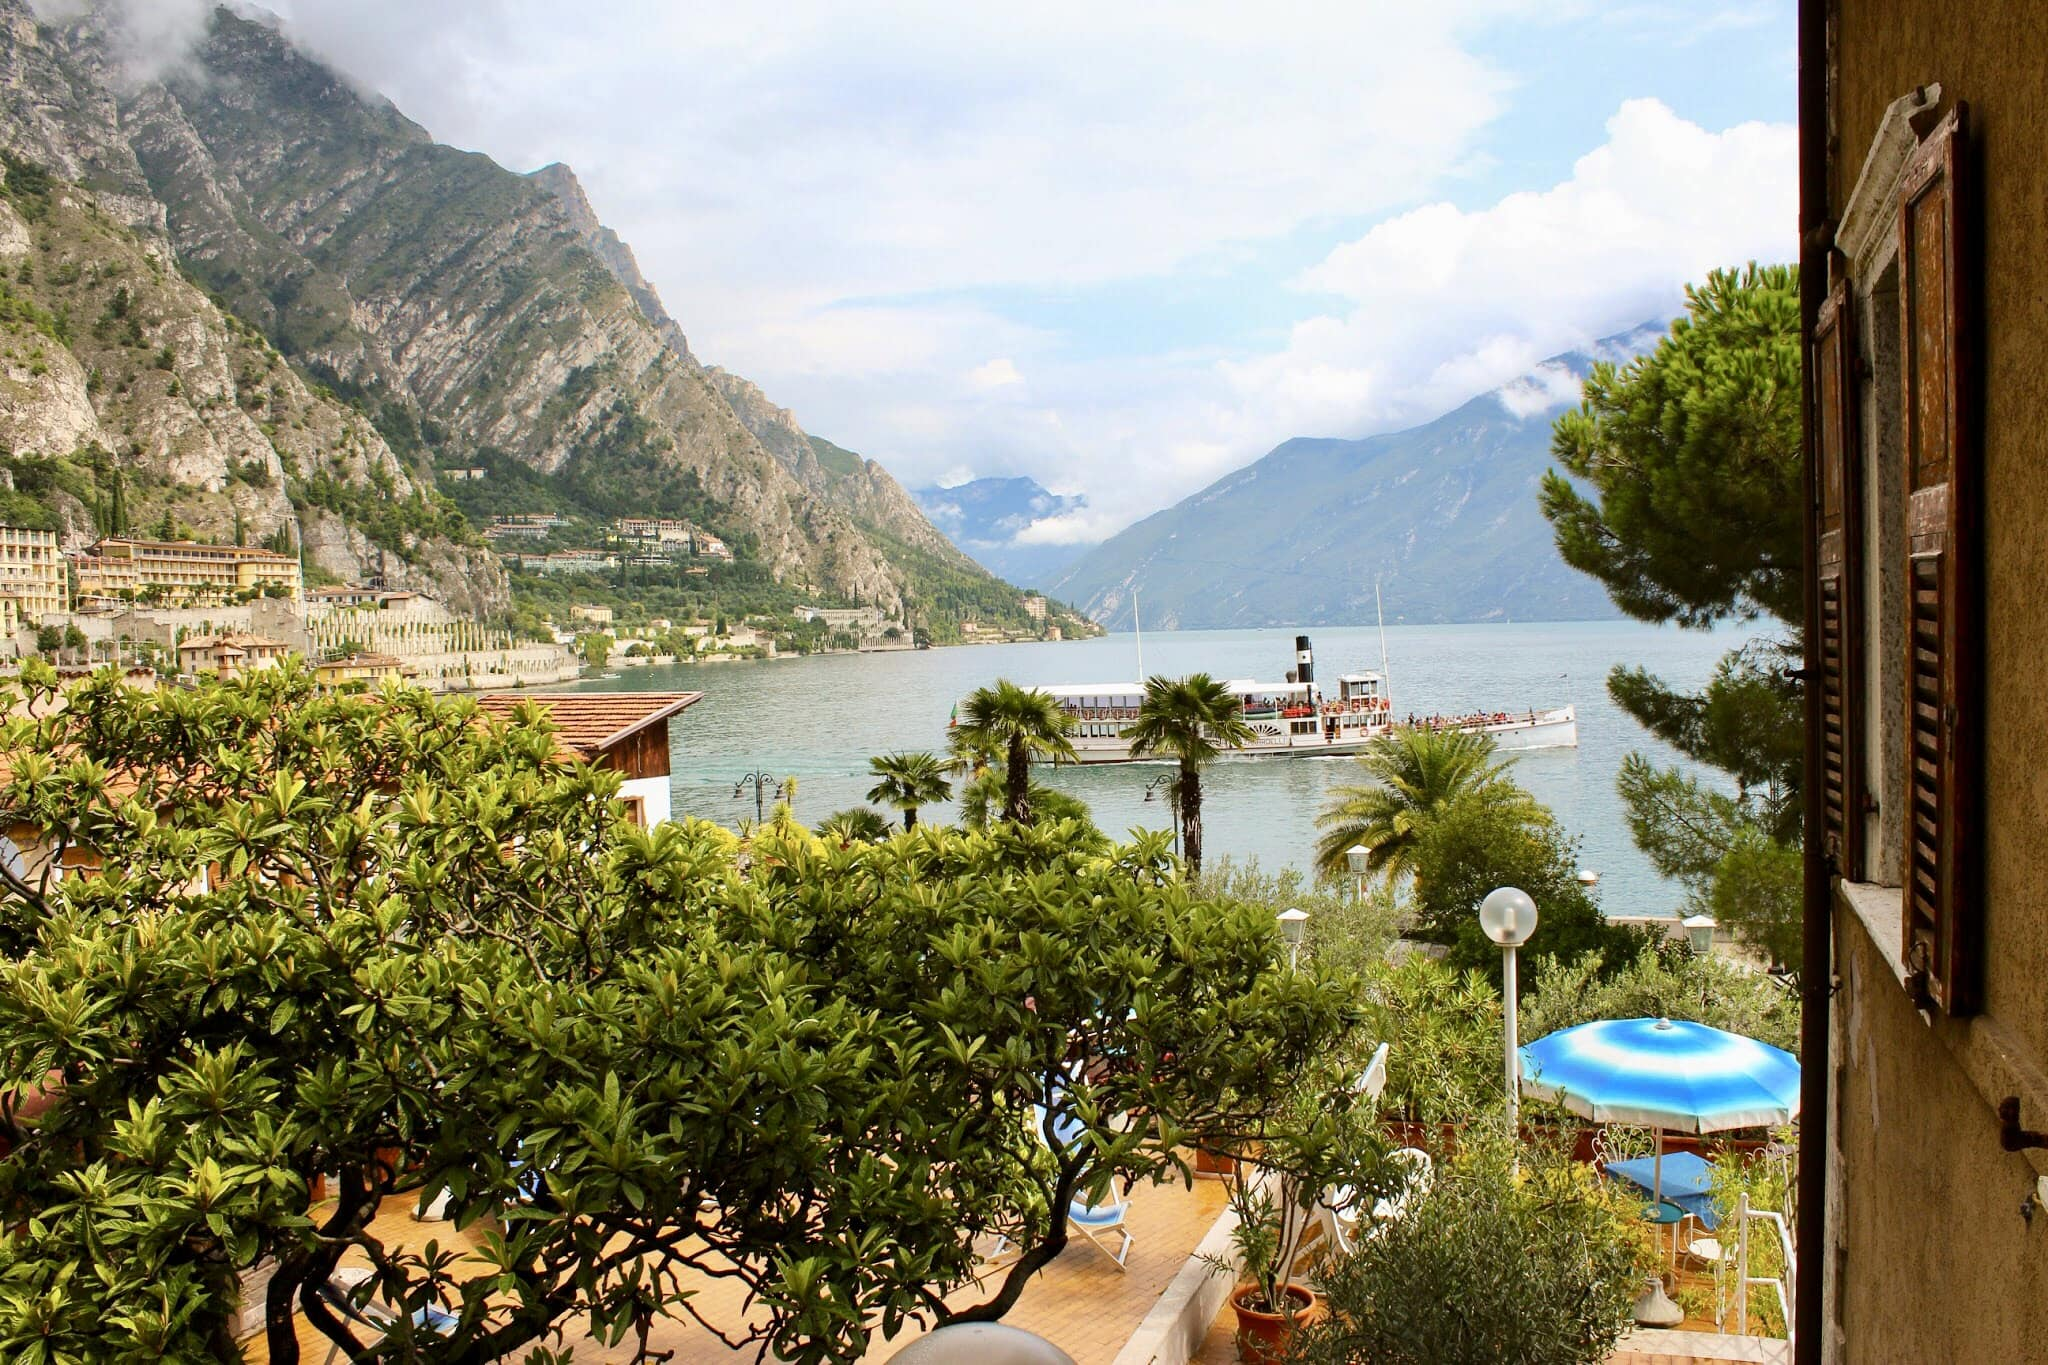 Hotel Bellavista Limone sul Garda, Booking, Reviews, Lago di Garda, Lake Garda, Gardasee